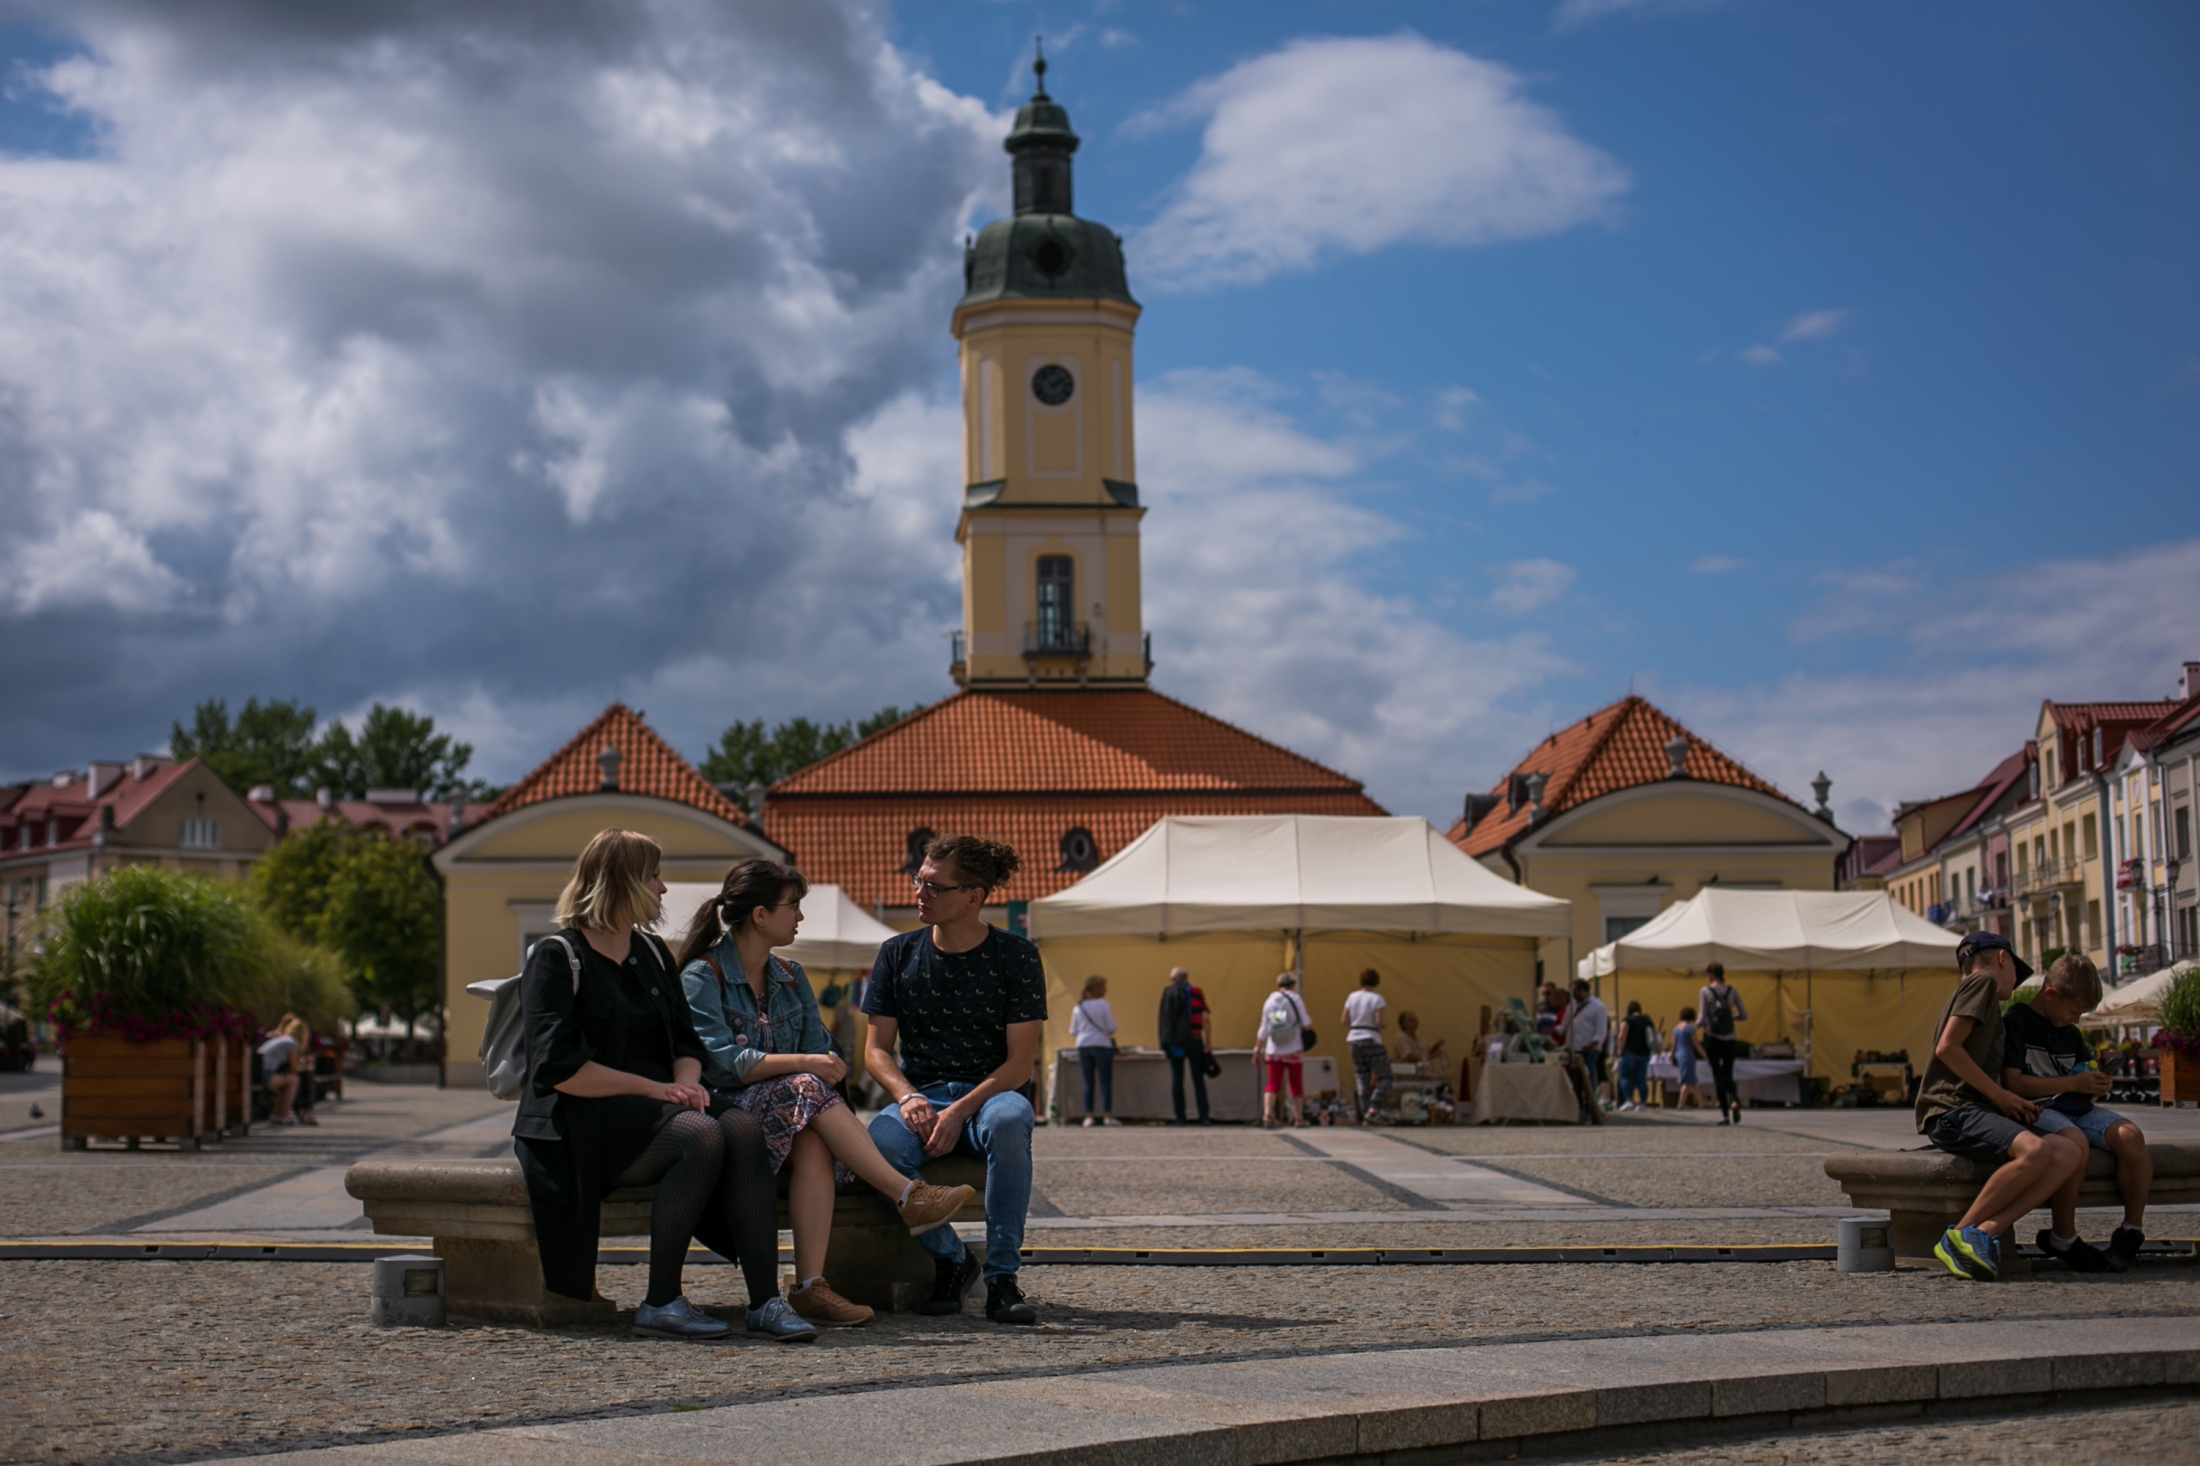 """Organizers of an L.G.T.B march in Bialystok, Poland. """"I don't want to leave this country, but I wonder if there is a place in Poland where I can feel safe,"""" said one. Bialystok, Poland 2019 The New York Times"""